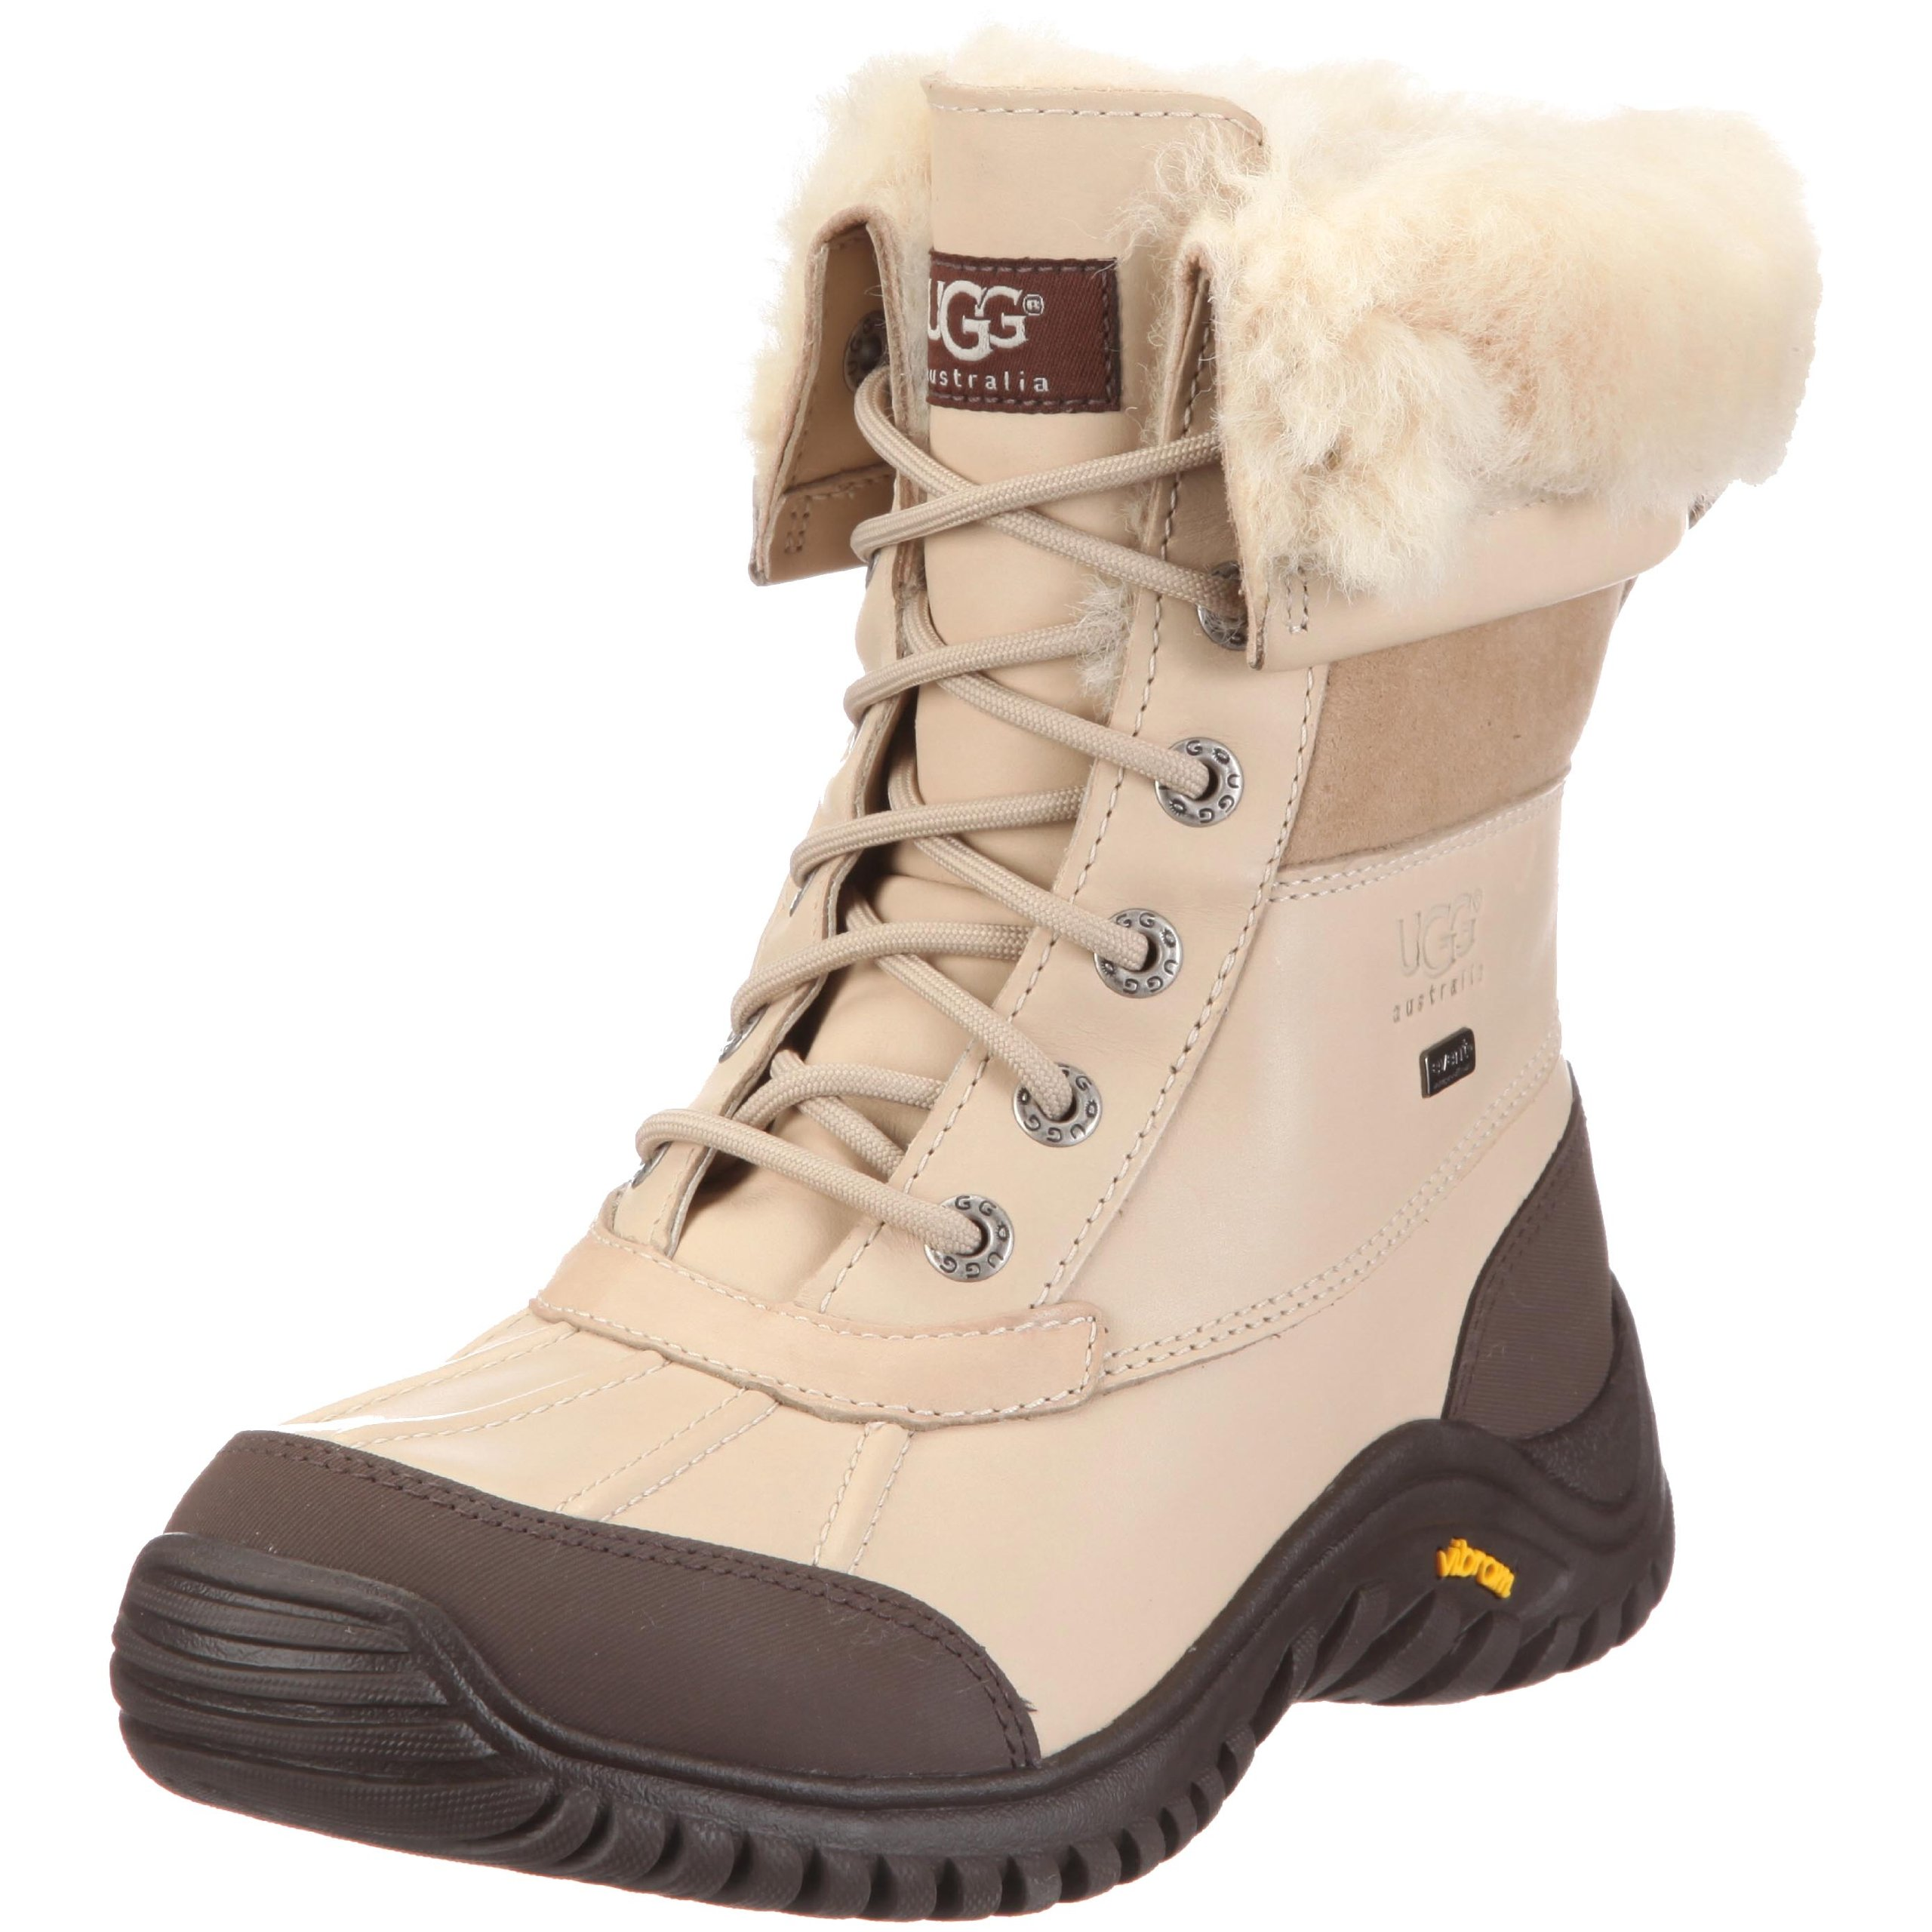 UGG Women's Adirondack II Winter Boot, Sand, 11 B US by UGG